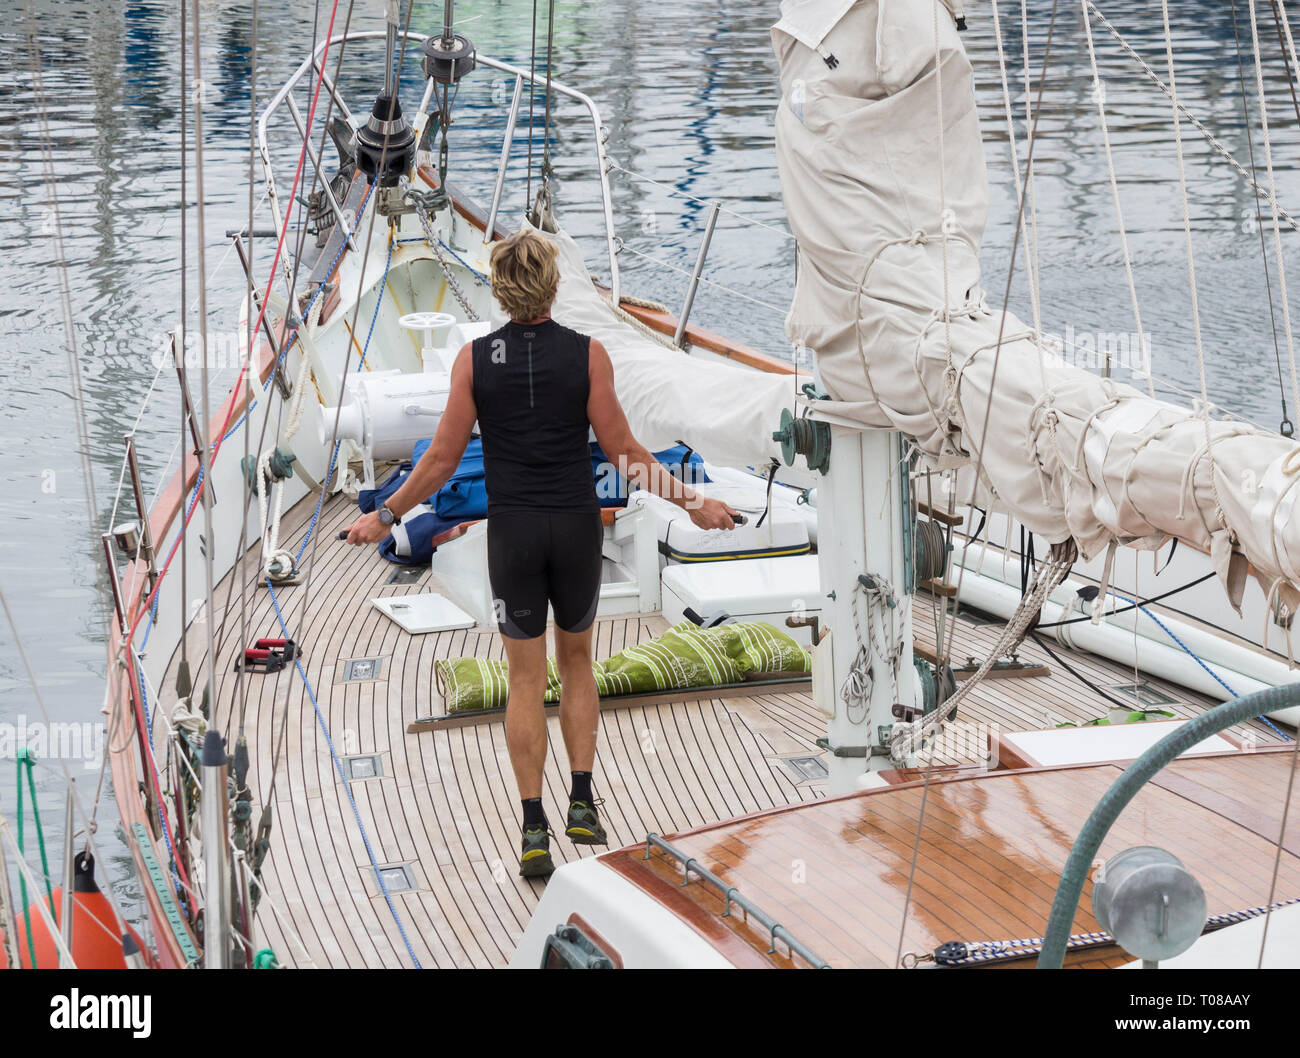 Sailor skipping/working out on large yacht in marina. - Stock Image